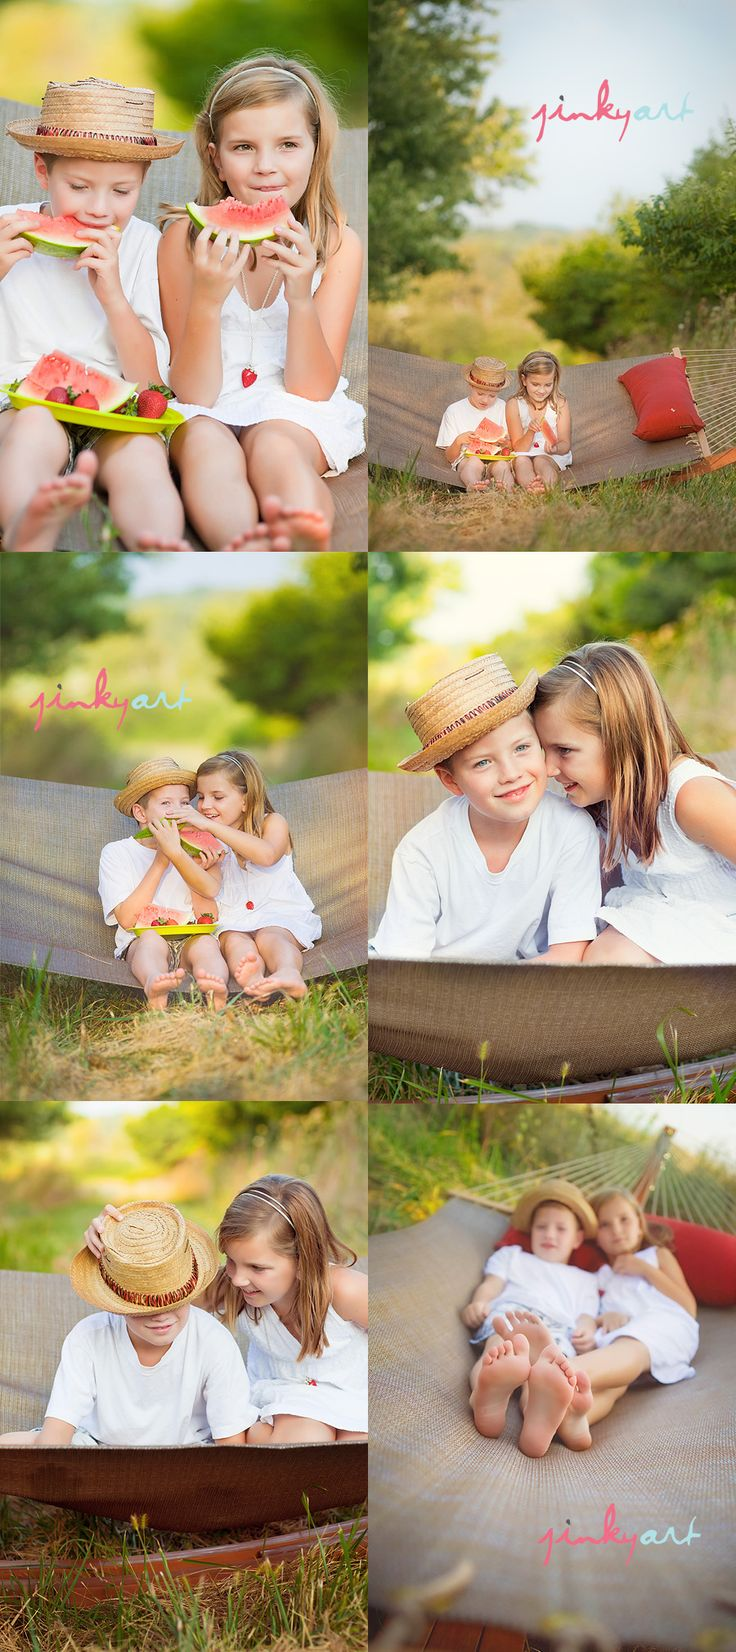 JinkyArt Blog – Barb Uil, Children, Lifestyle and Babies Commercial and Portrait Photographer» Blog Archive » Summer Days – {Ohio}